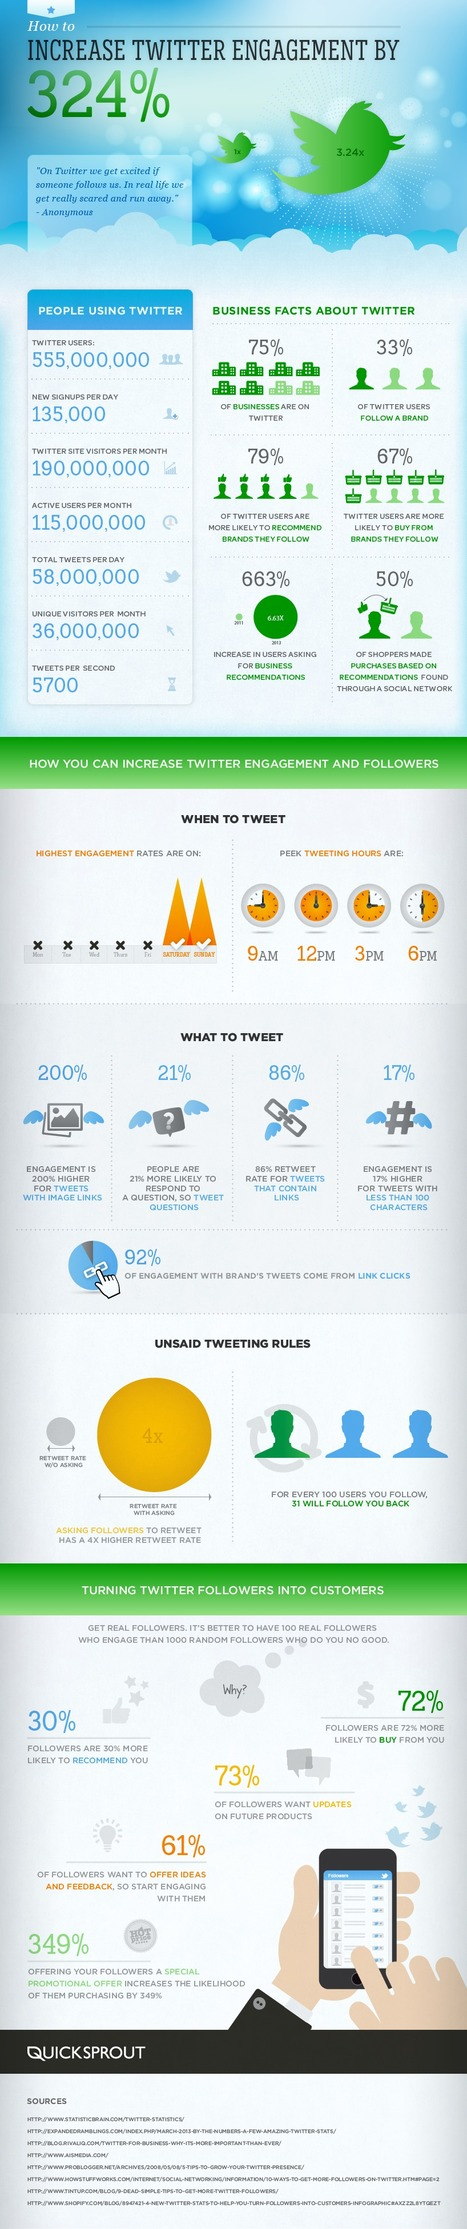 Twitter Drives Traffic via Engagement | Local Search Marketing Ideas | Scoop.it